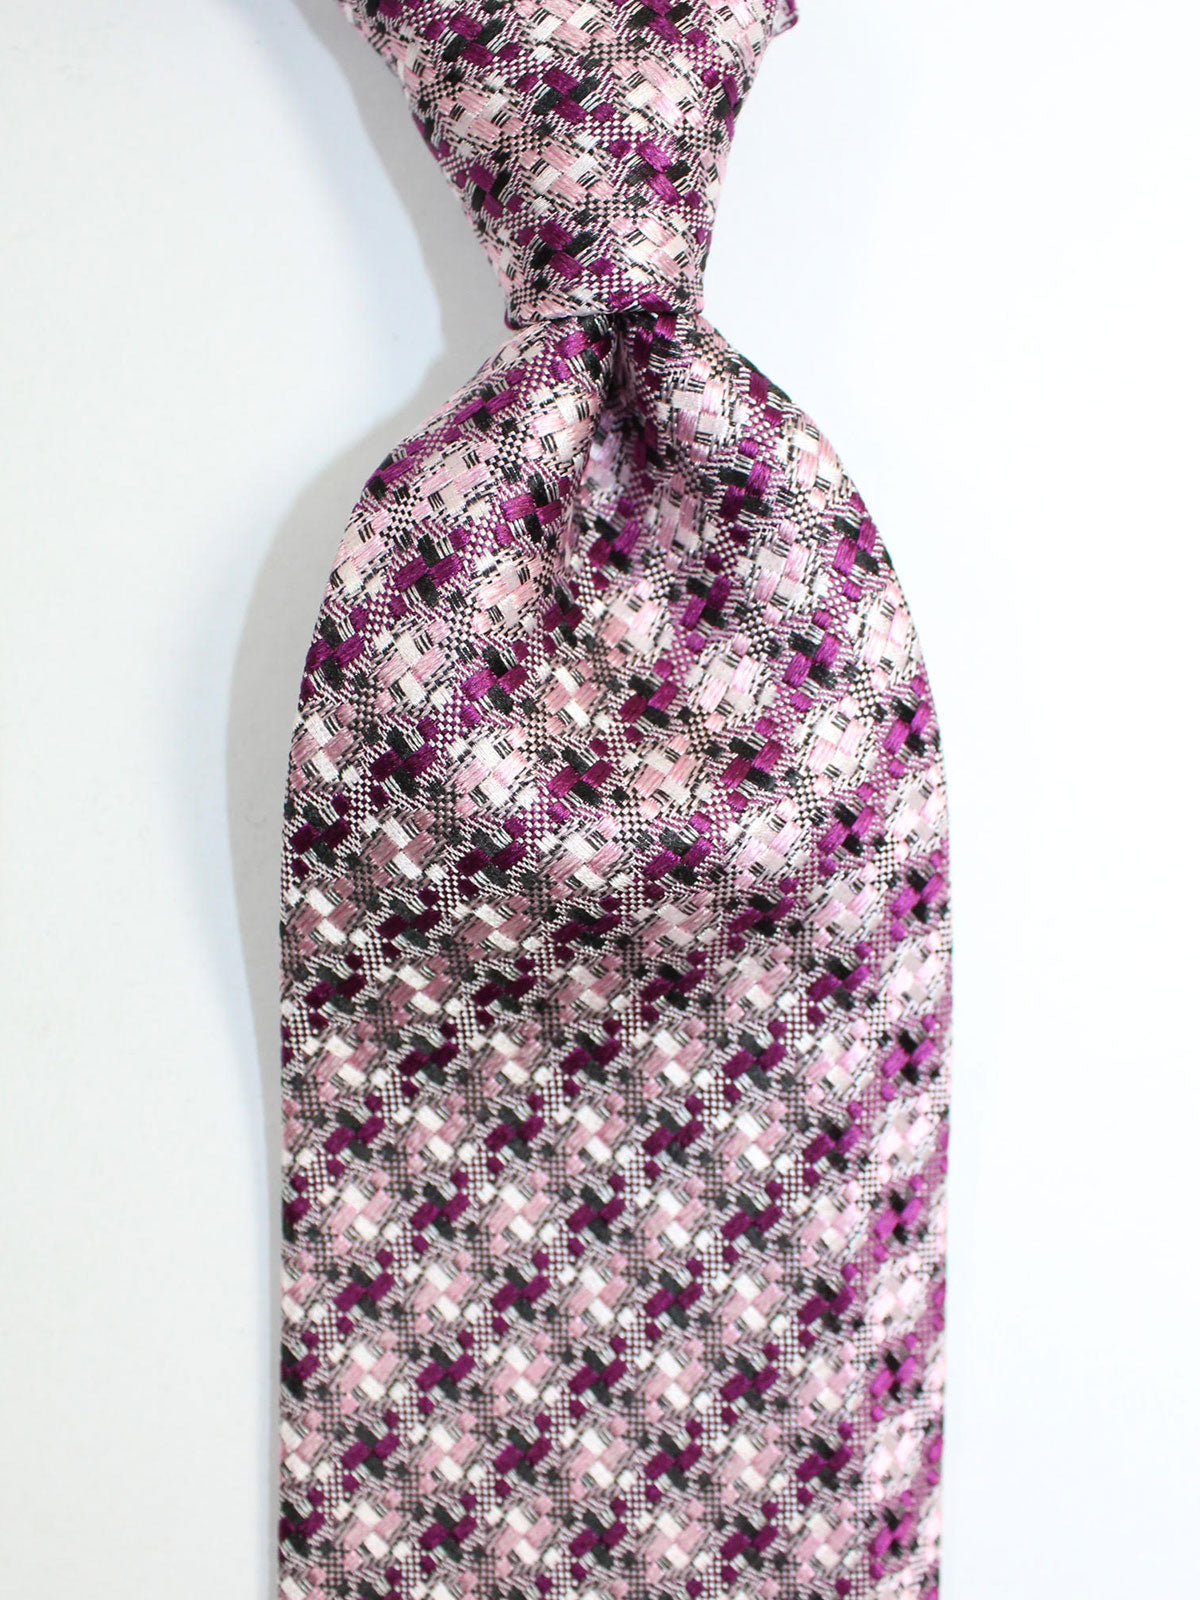 Tom Ford Silk Tie Pink Fuchsia Gray Geometric Design